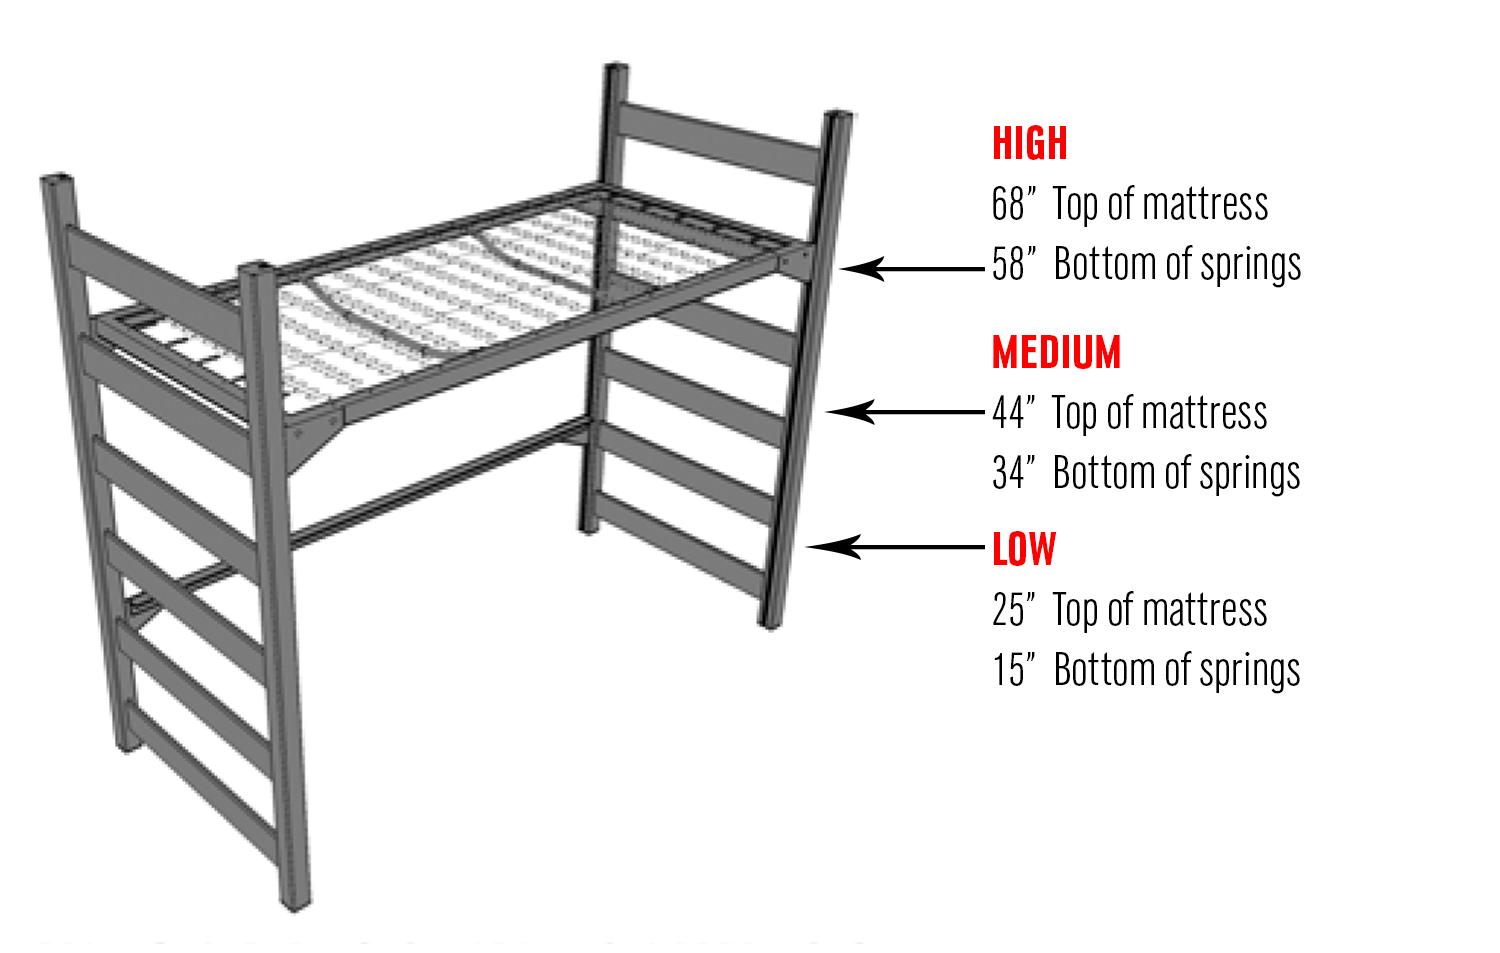 A diagram explaining bed height adjustments